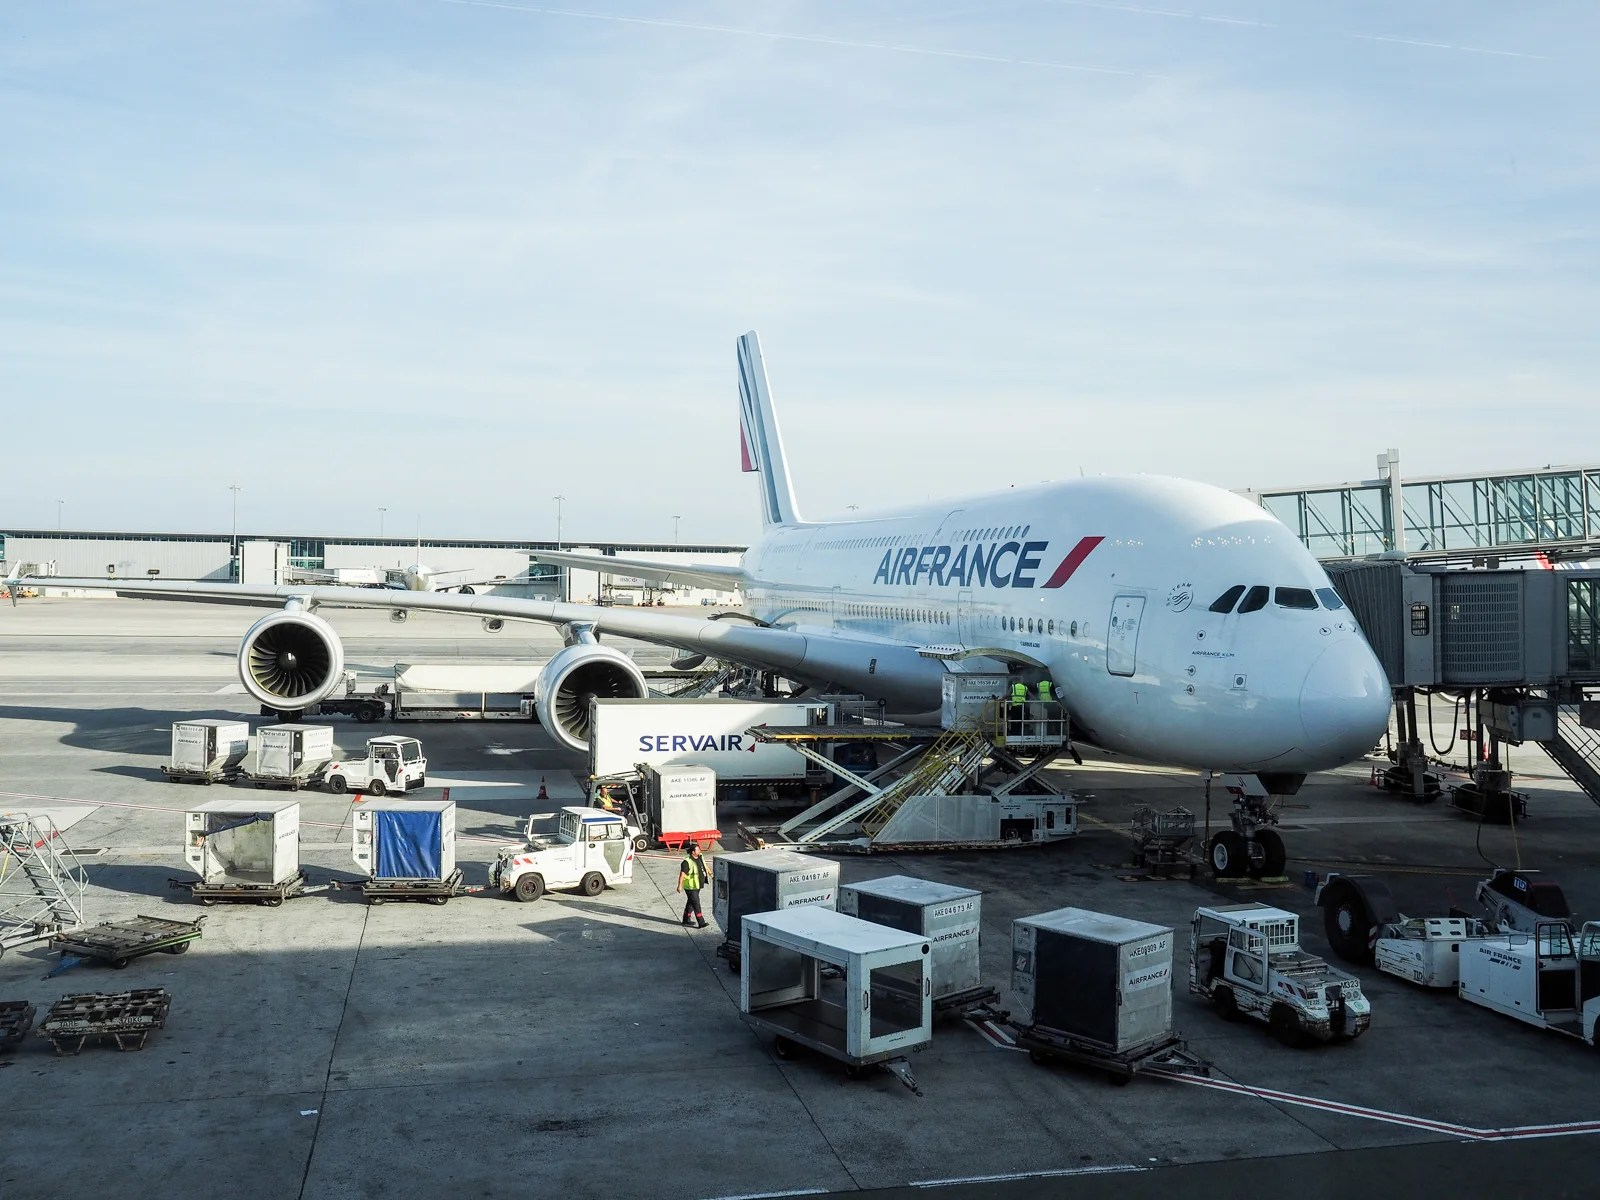 TPG Readers Reveal Their Best A380 Award Redemptions